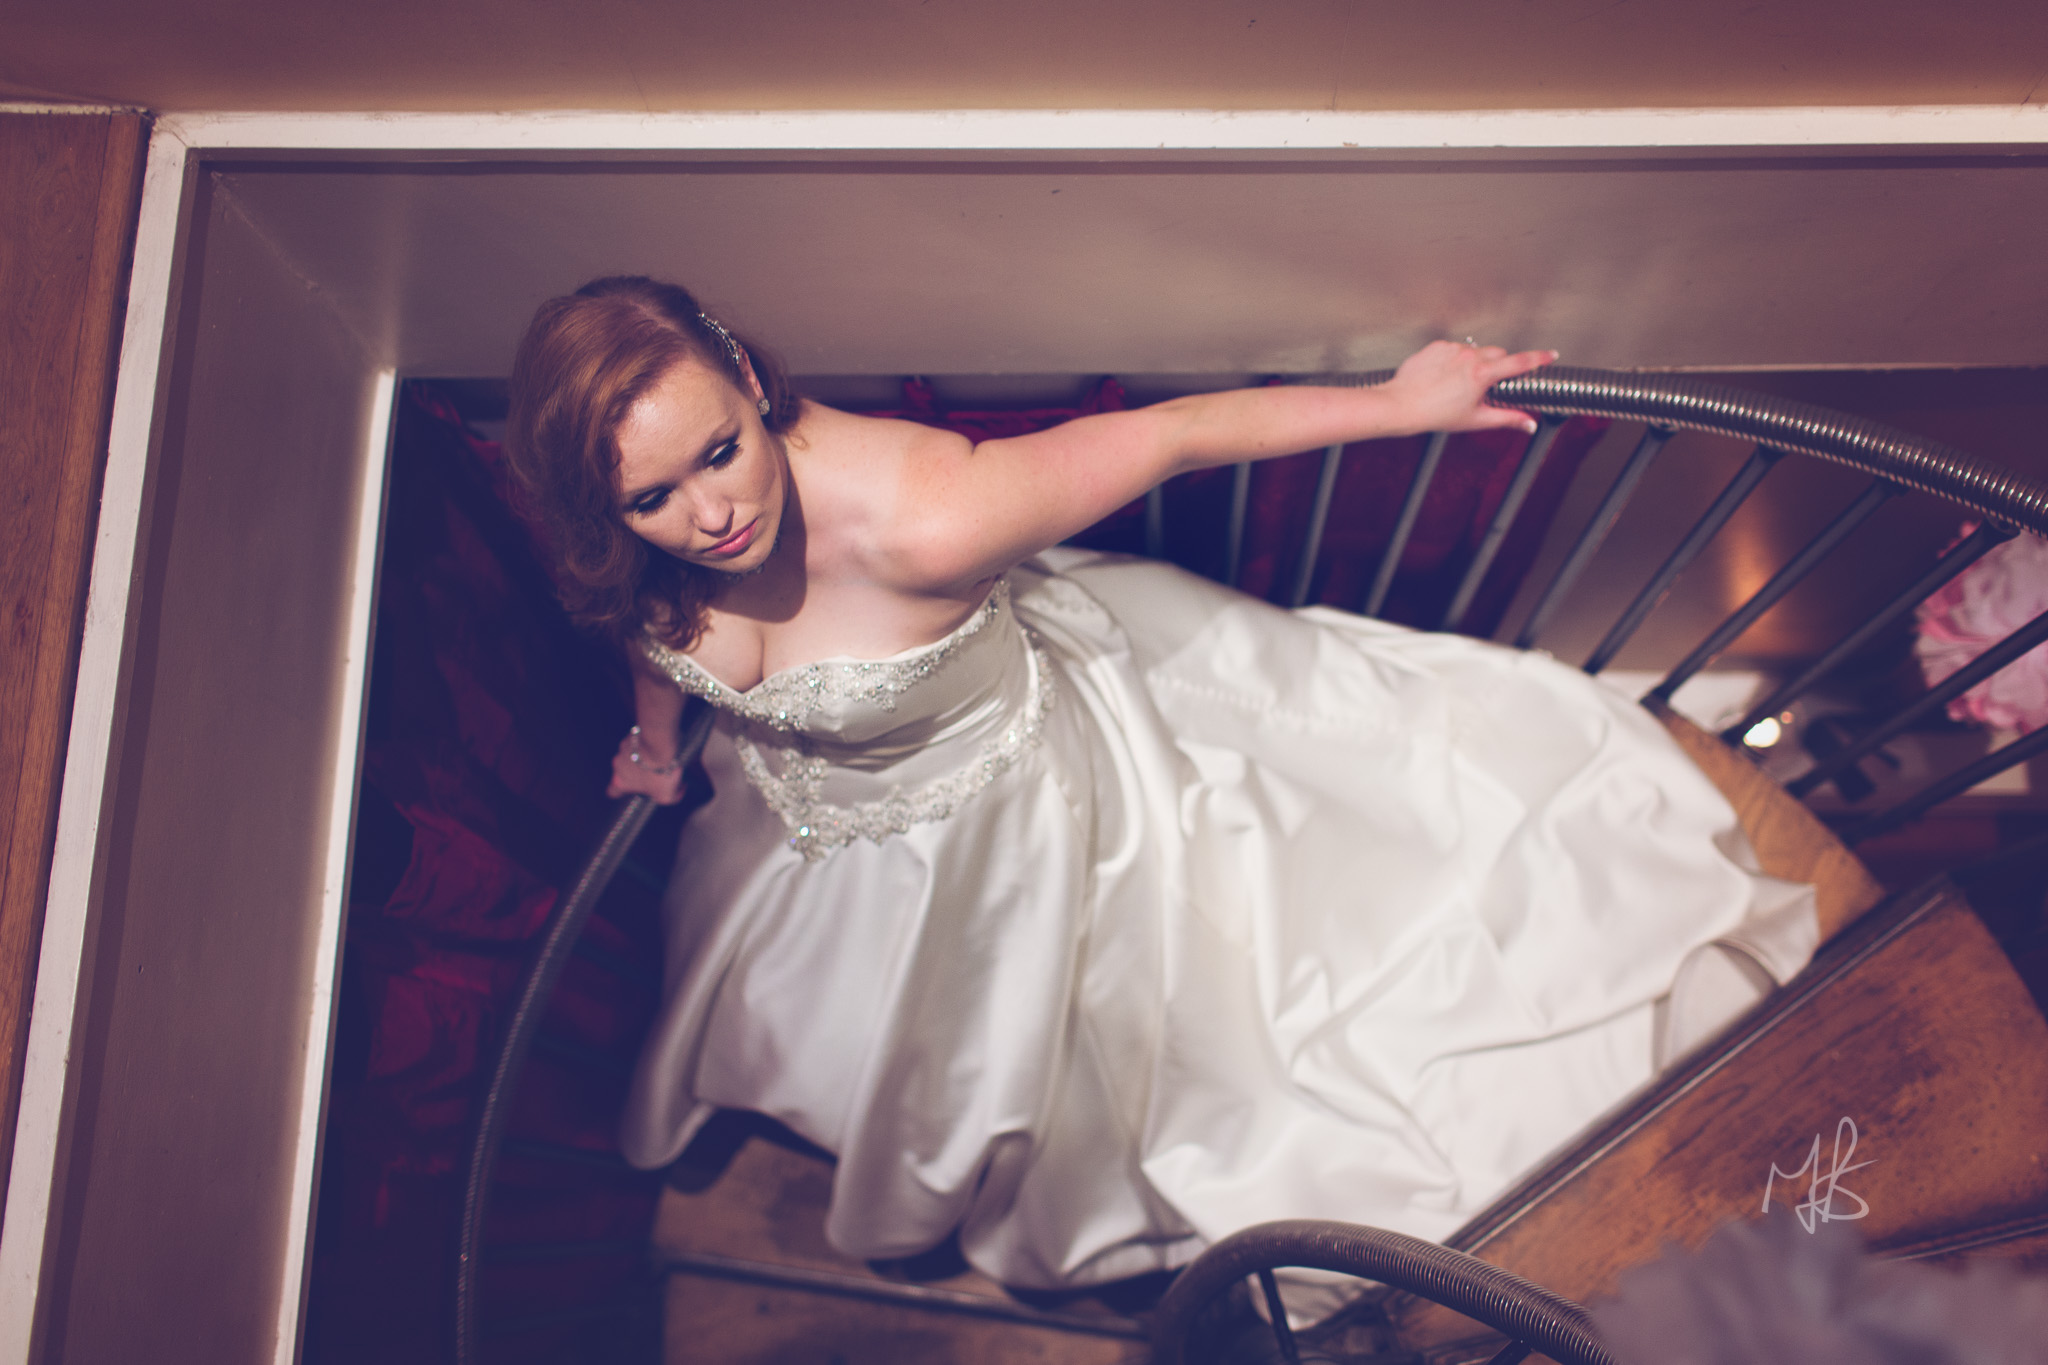 Mark_Barnes_Bristol_Wedding_Photography_Square_club_and_hotel_Jade_and_chris-276.jpg